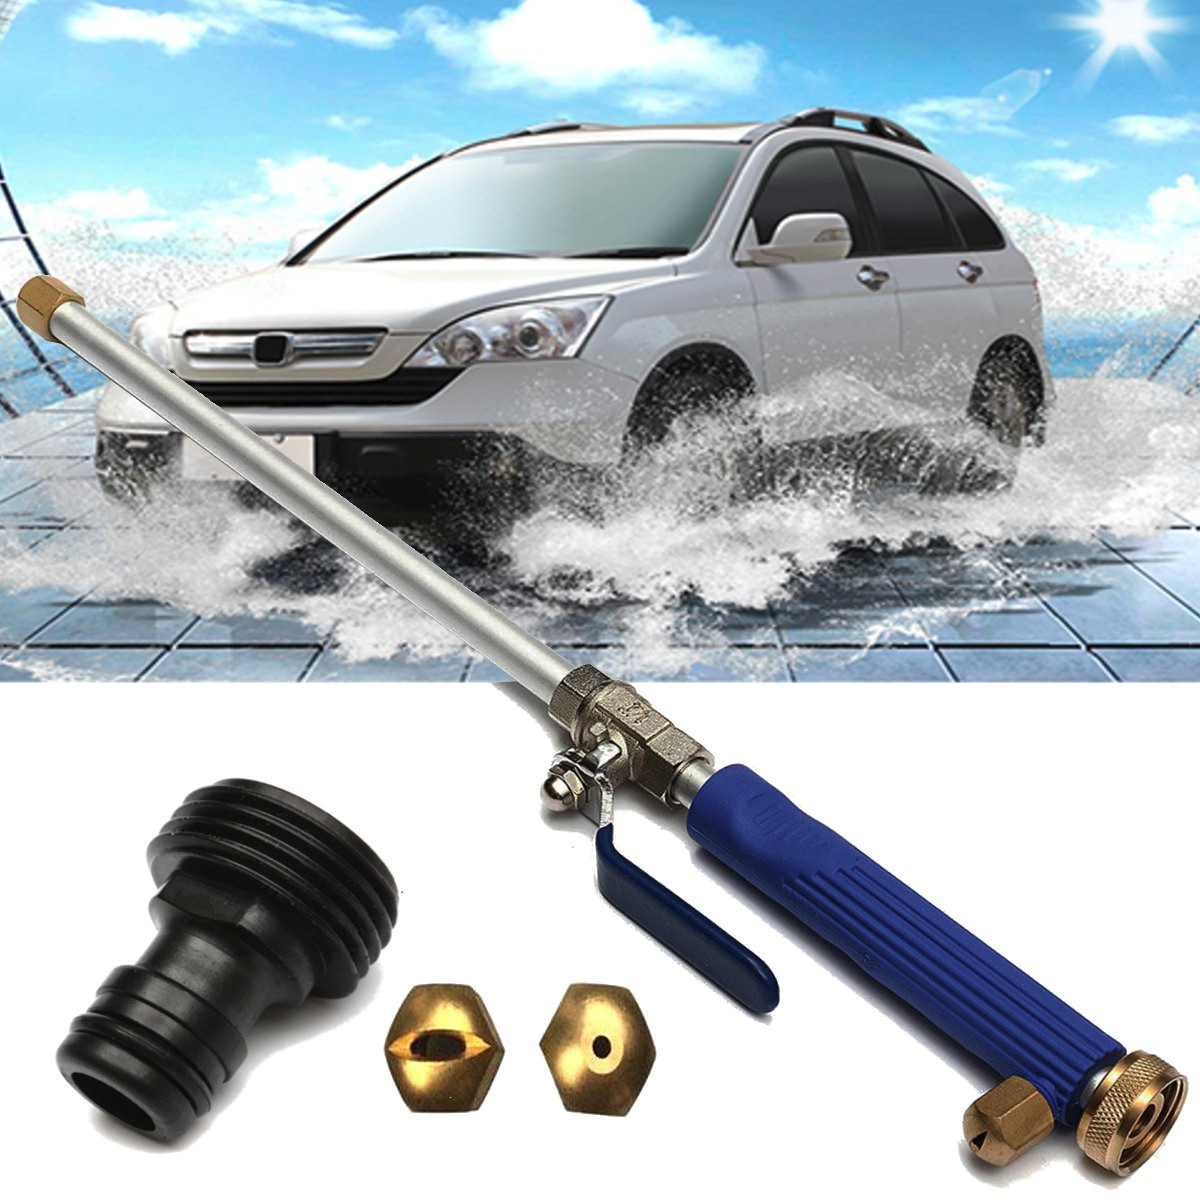 Spray-Nozzle Hose-Wand-Attachment Power-Car-Washer High-Pressure Water-Gun 18-Aluminium title=